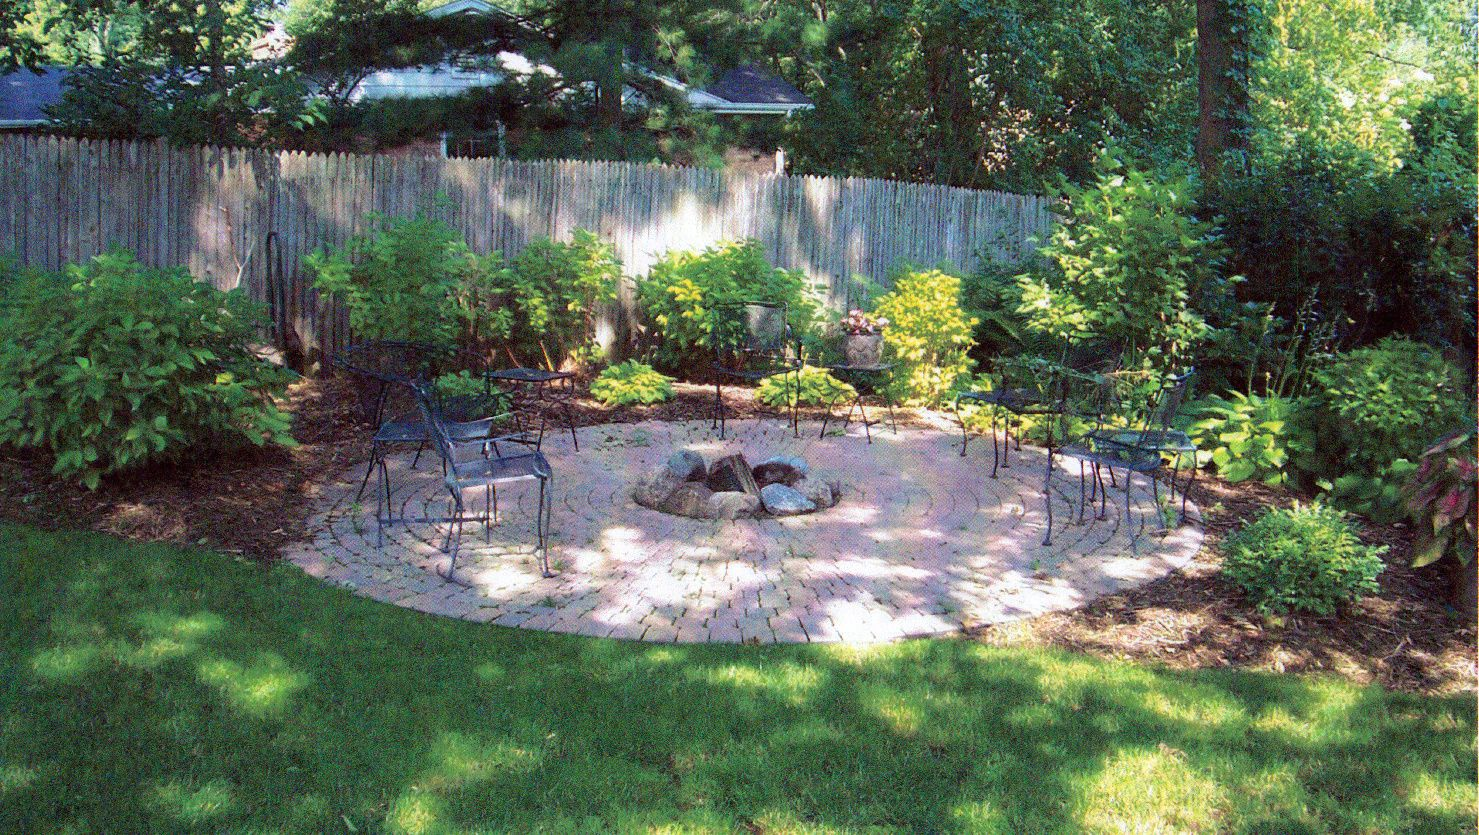 Simple Backyard Ideas: Earning a Great Place to Have Good ... on Cool Backyard Designs id=58089